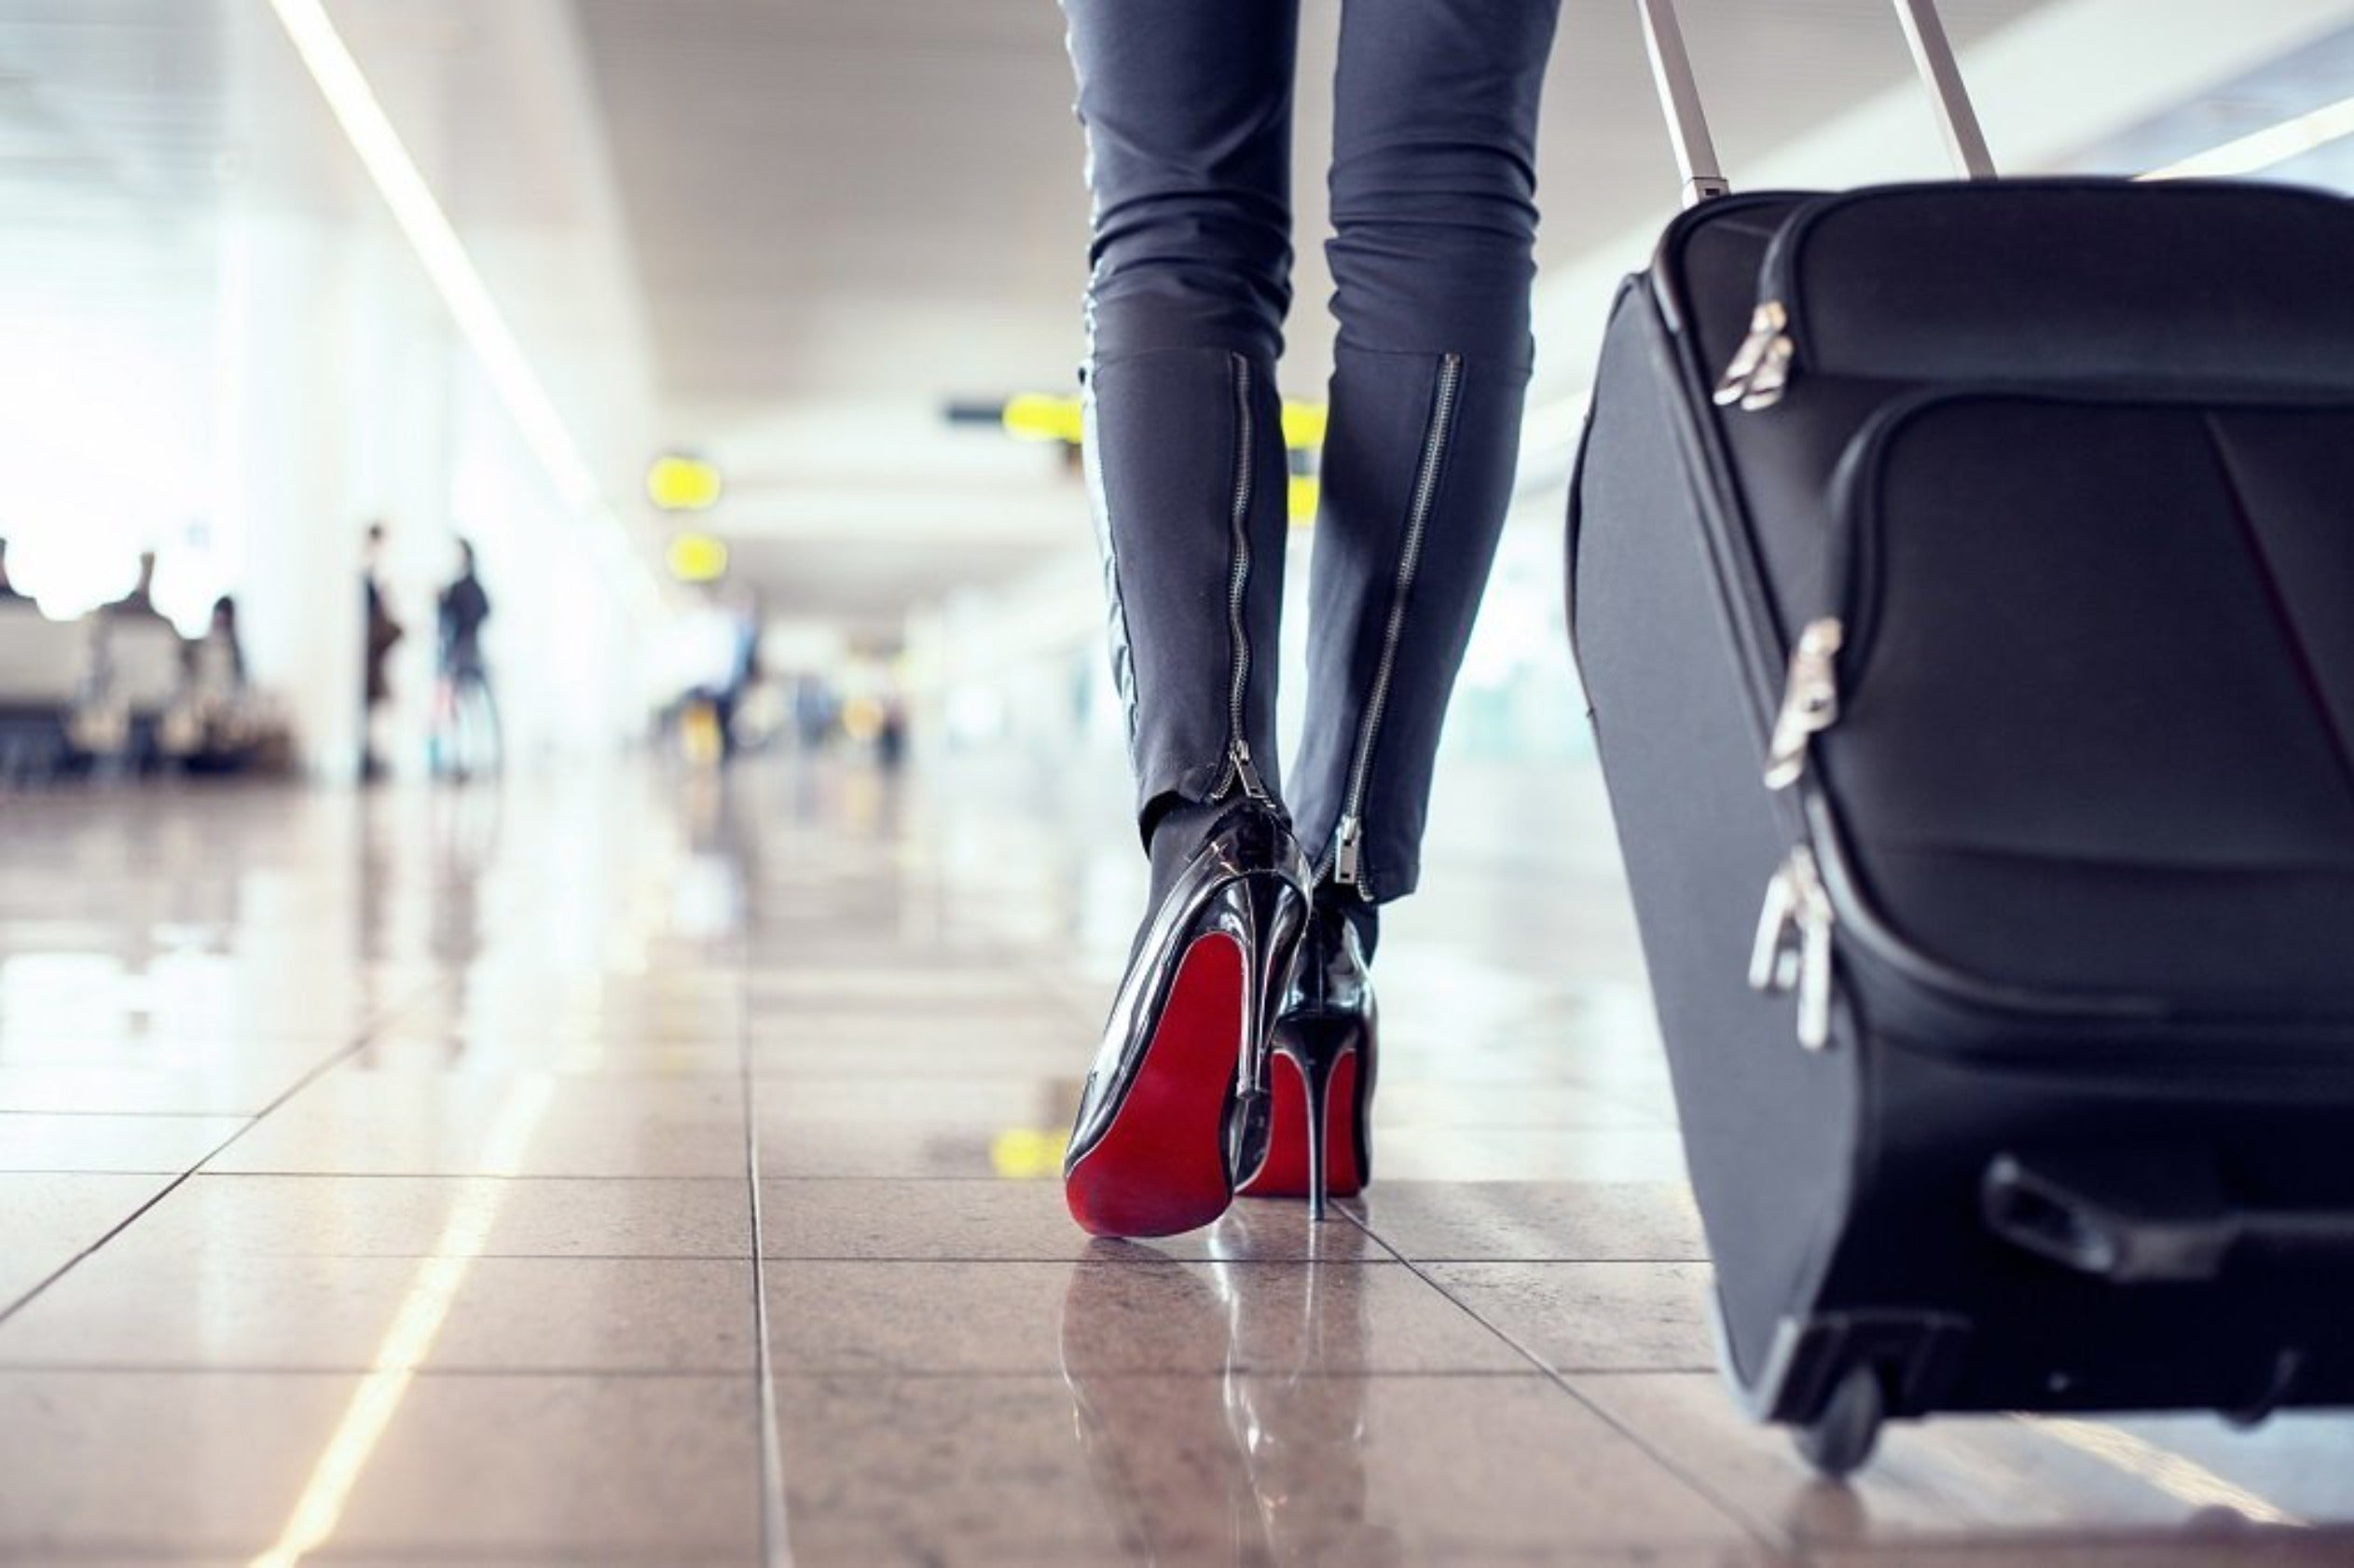 Red-Bottom-Shoes-Walking-Airport - Bisset-Holland